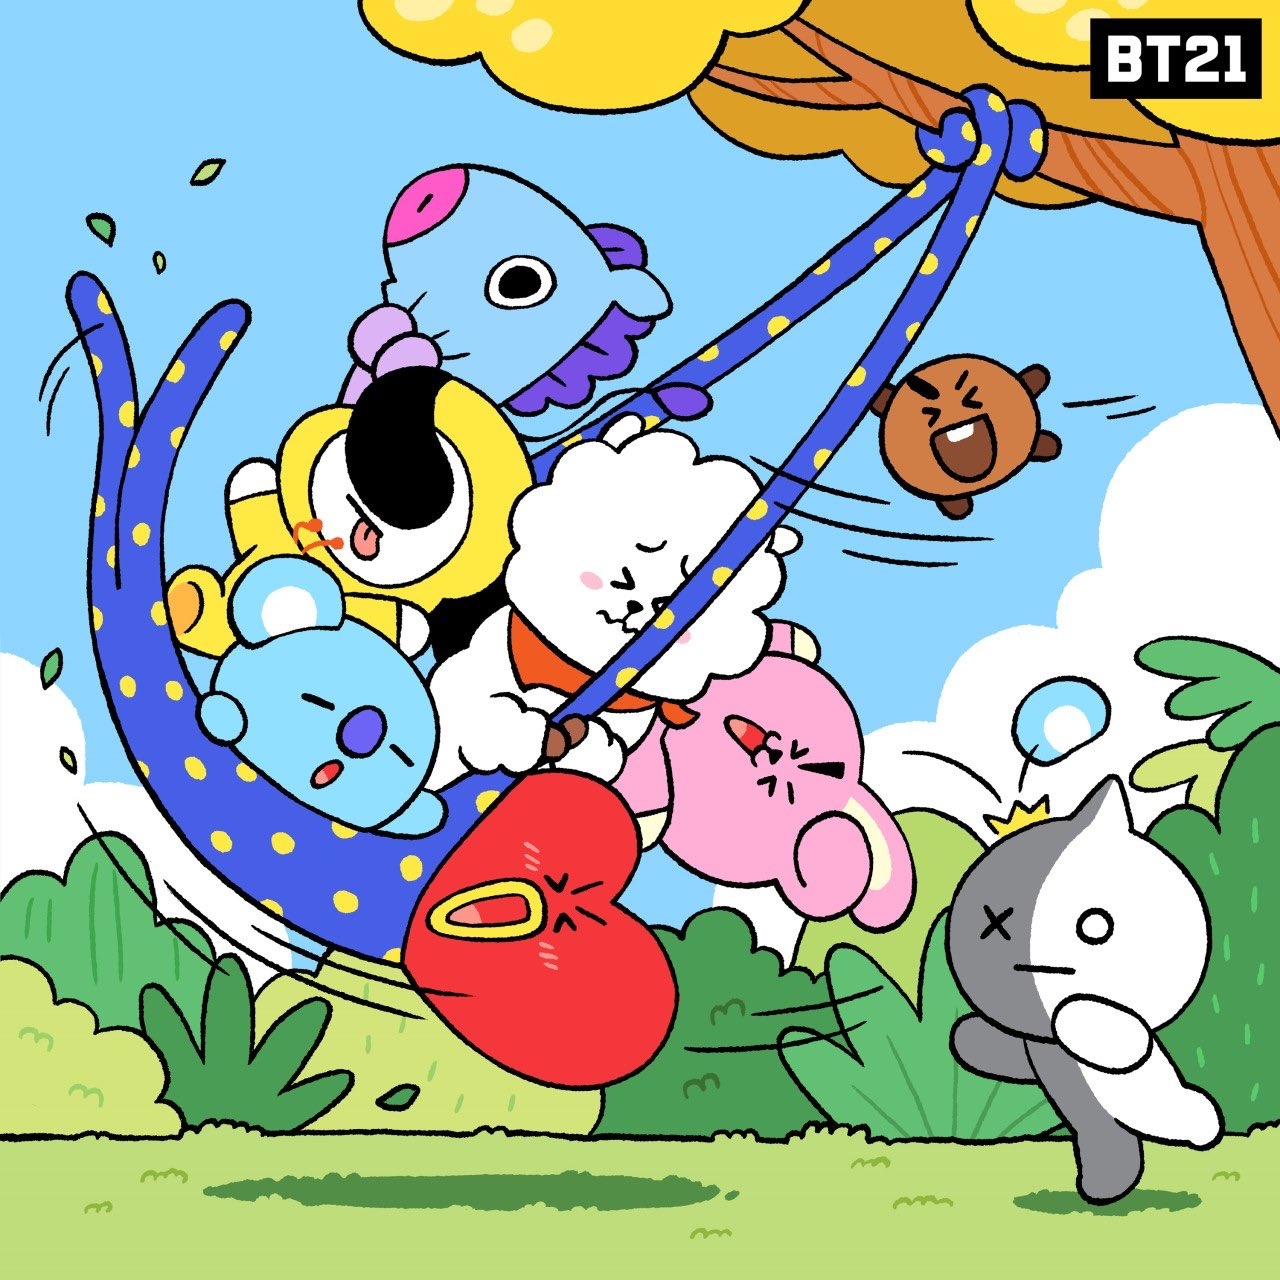 Bt21 On Twitter Swing By And Hang Around Tata S Latest